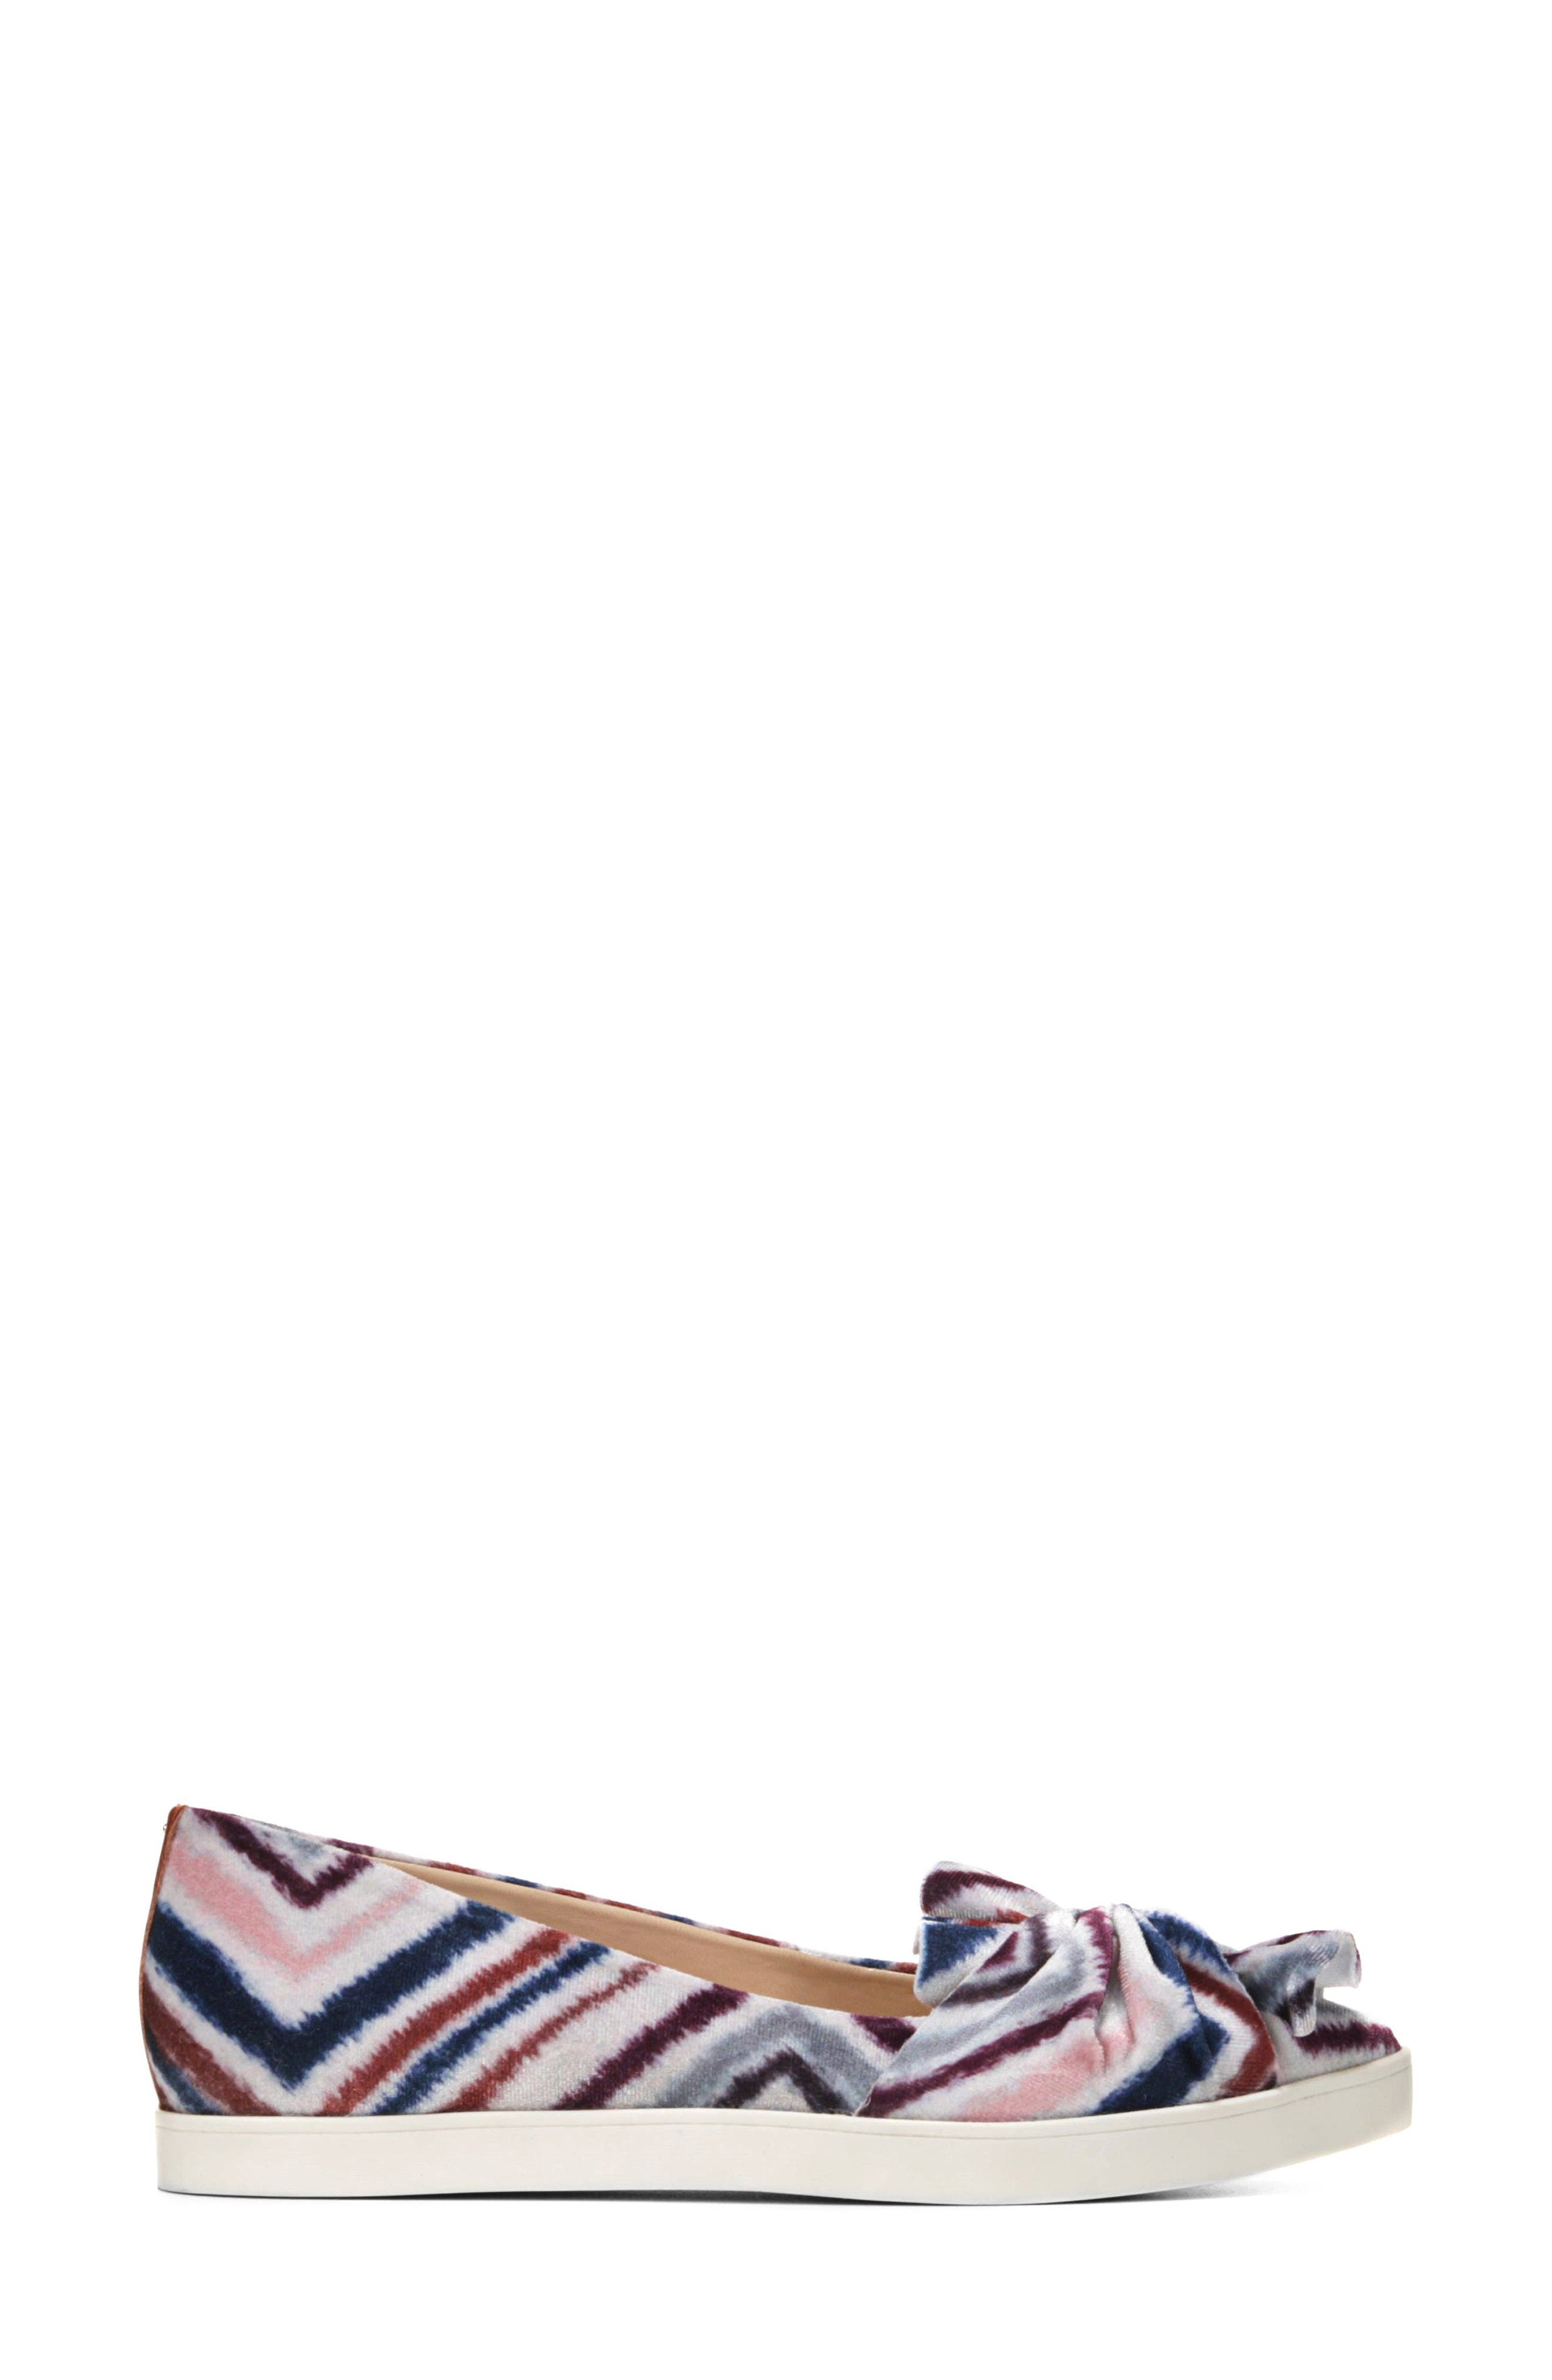 Viv Knotted Sneaker,                             Alternate thumbnail 3, color,                             Henna Printed Suede